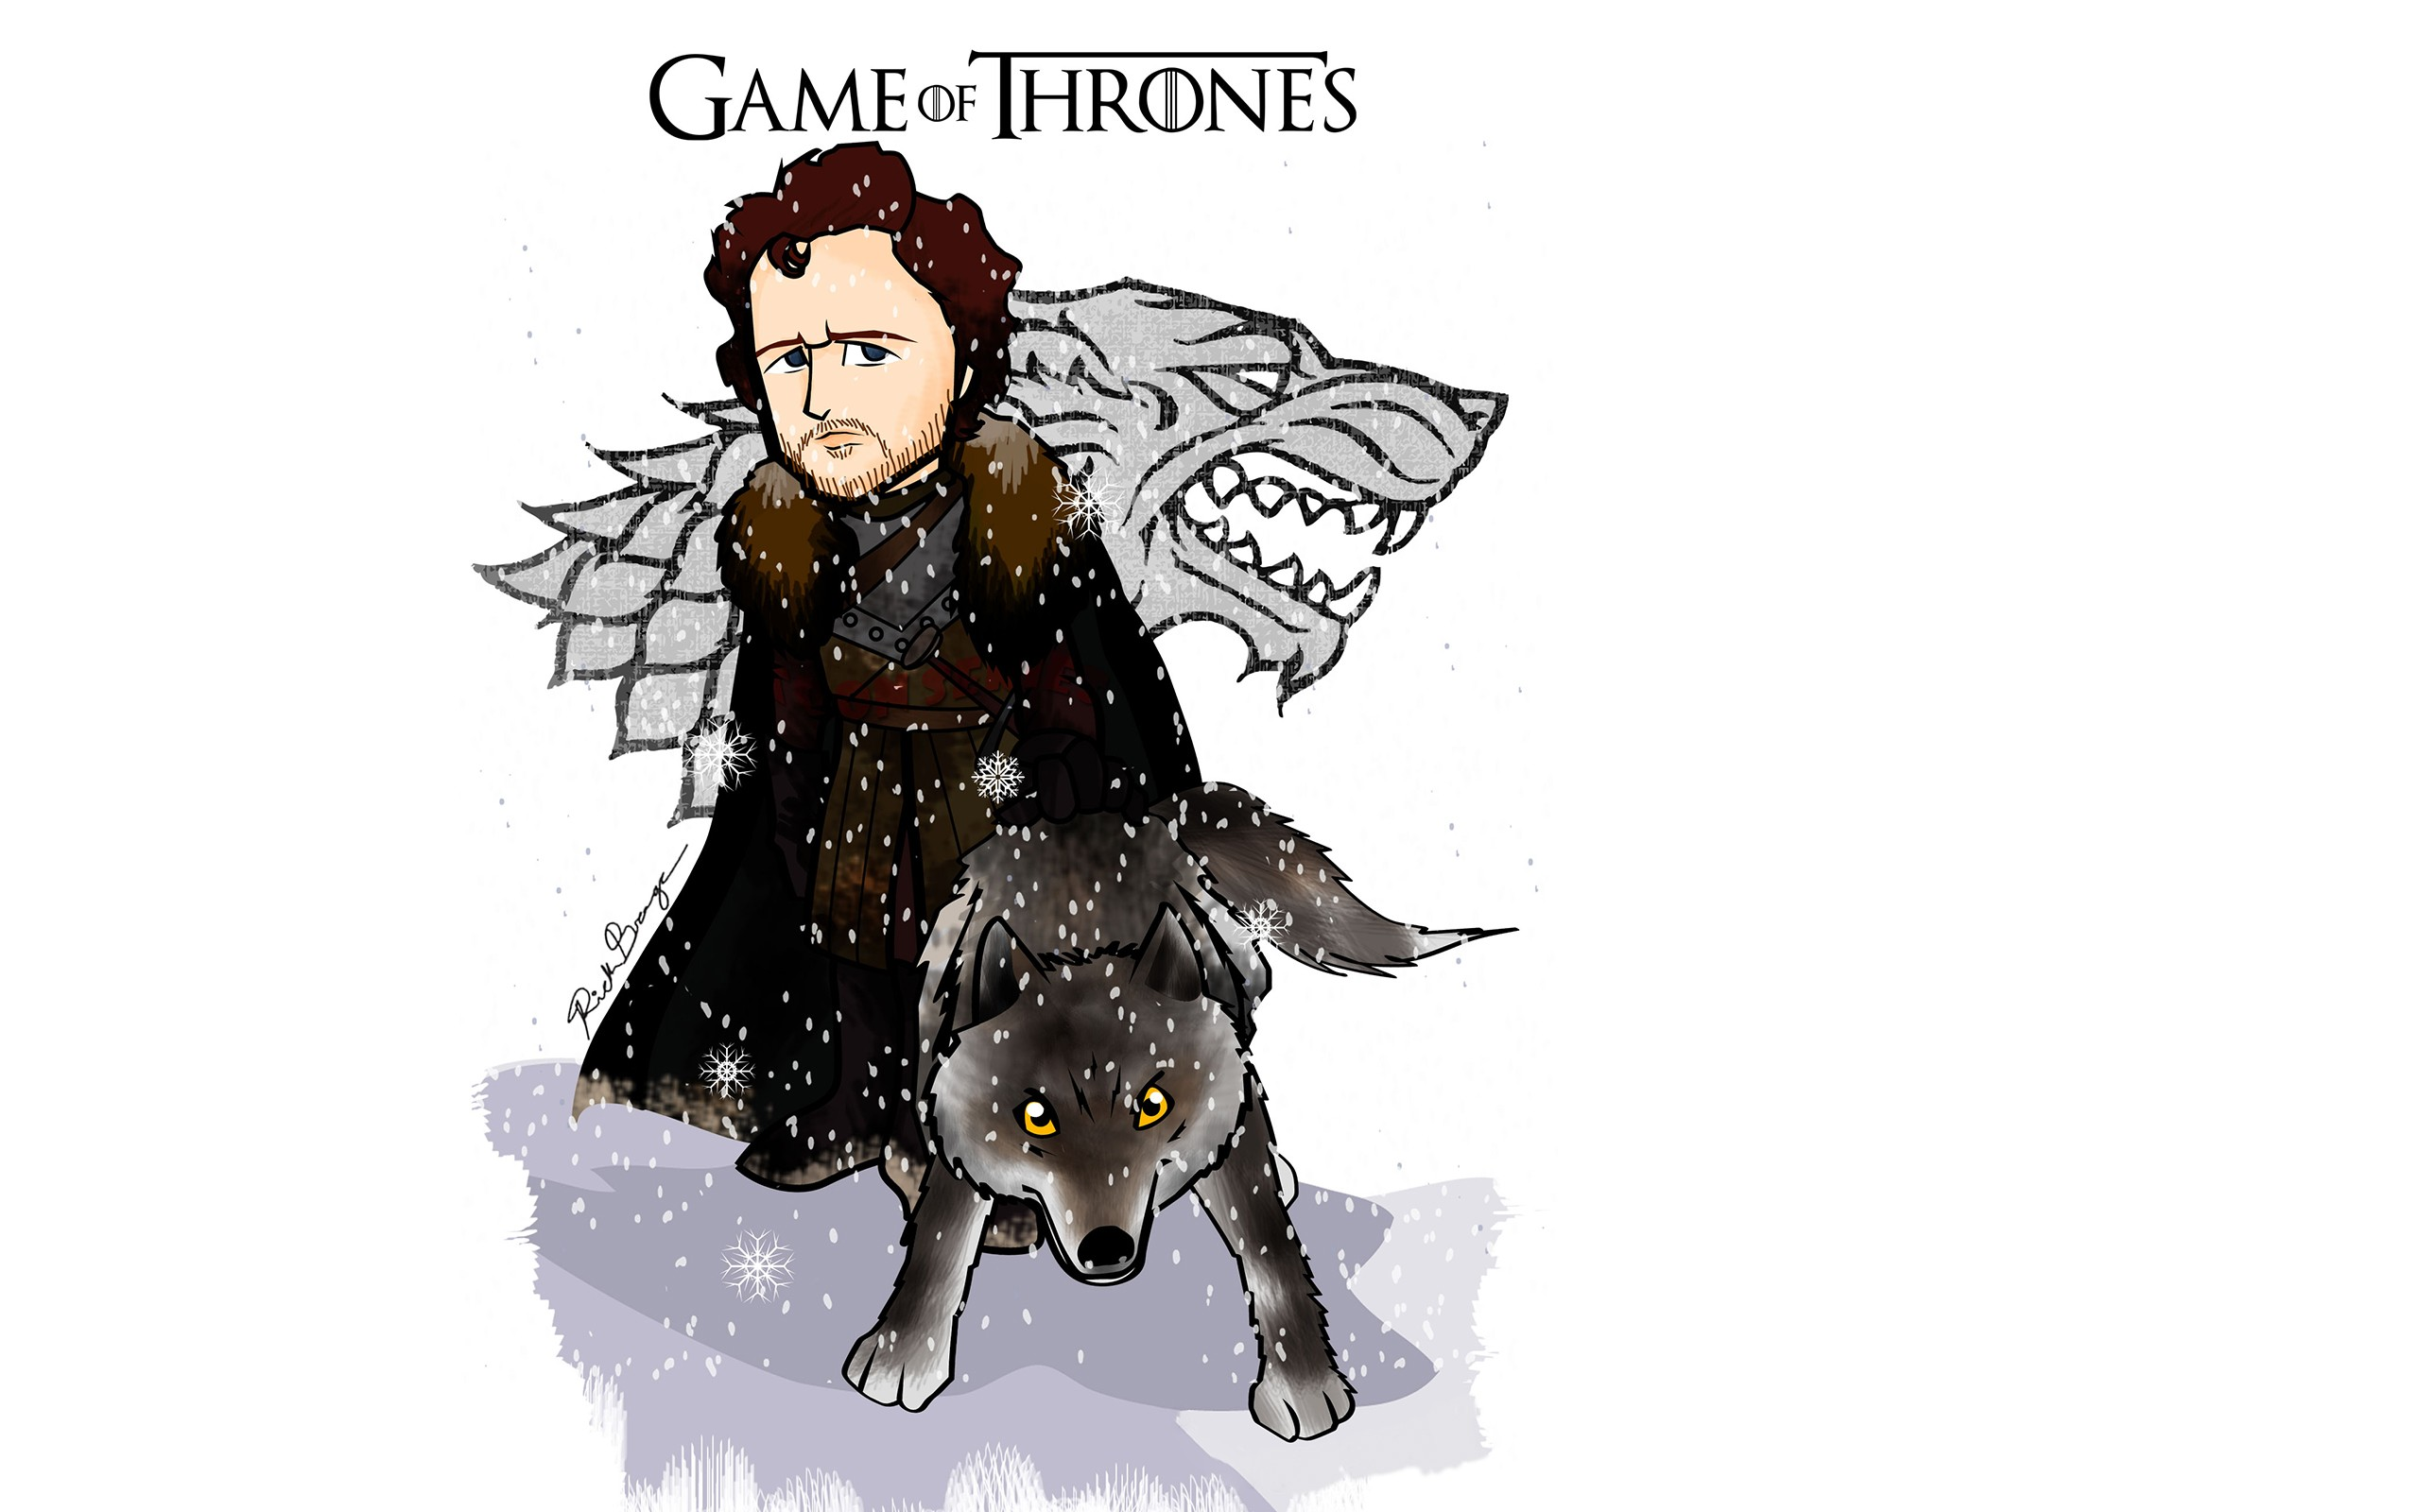 Game Of Thrones Minimalist Wallpaper: Robb Stark Minimalism, HD Tv Shows, 4k Wallpapers, Images